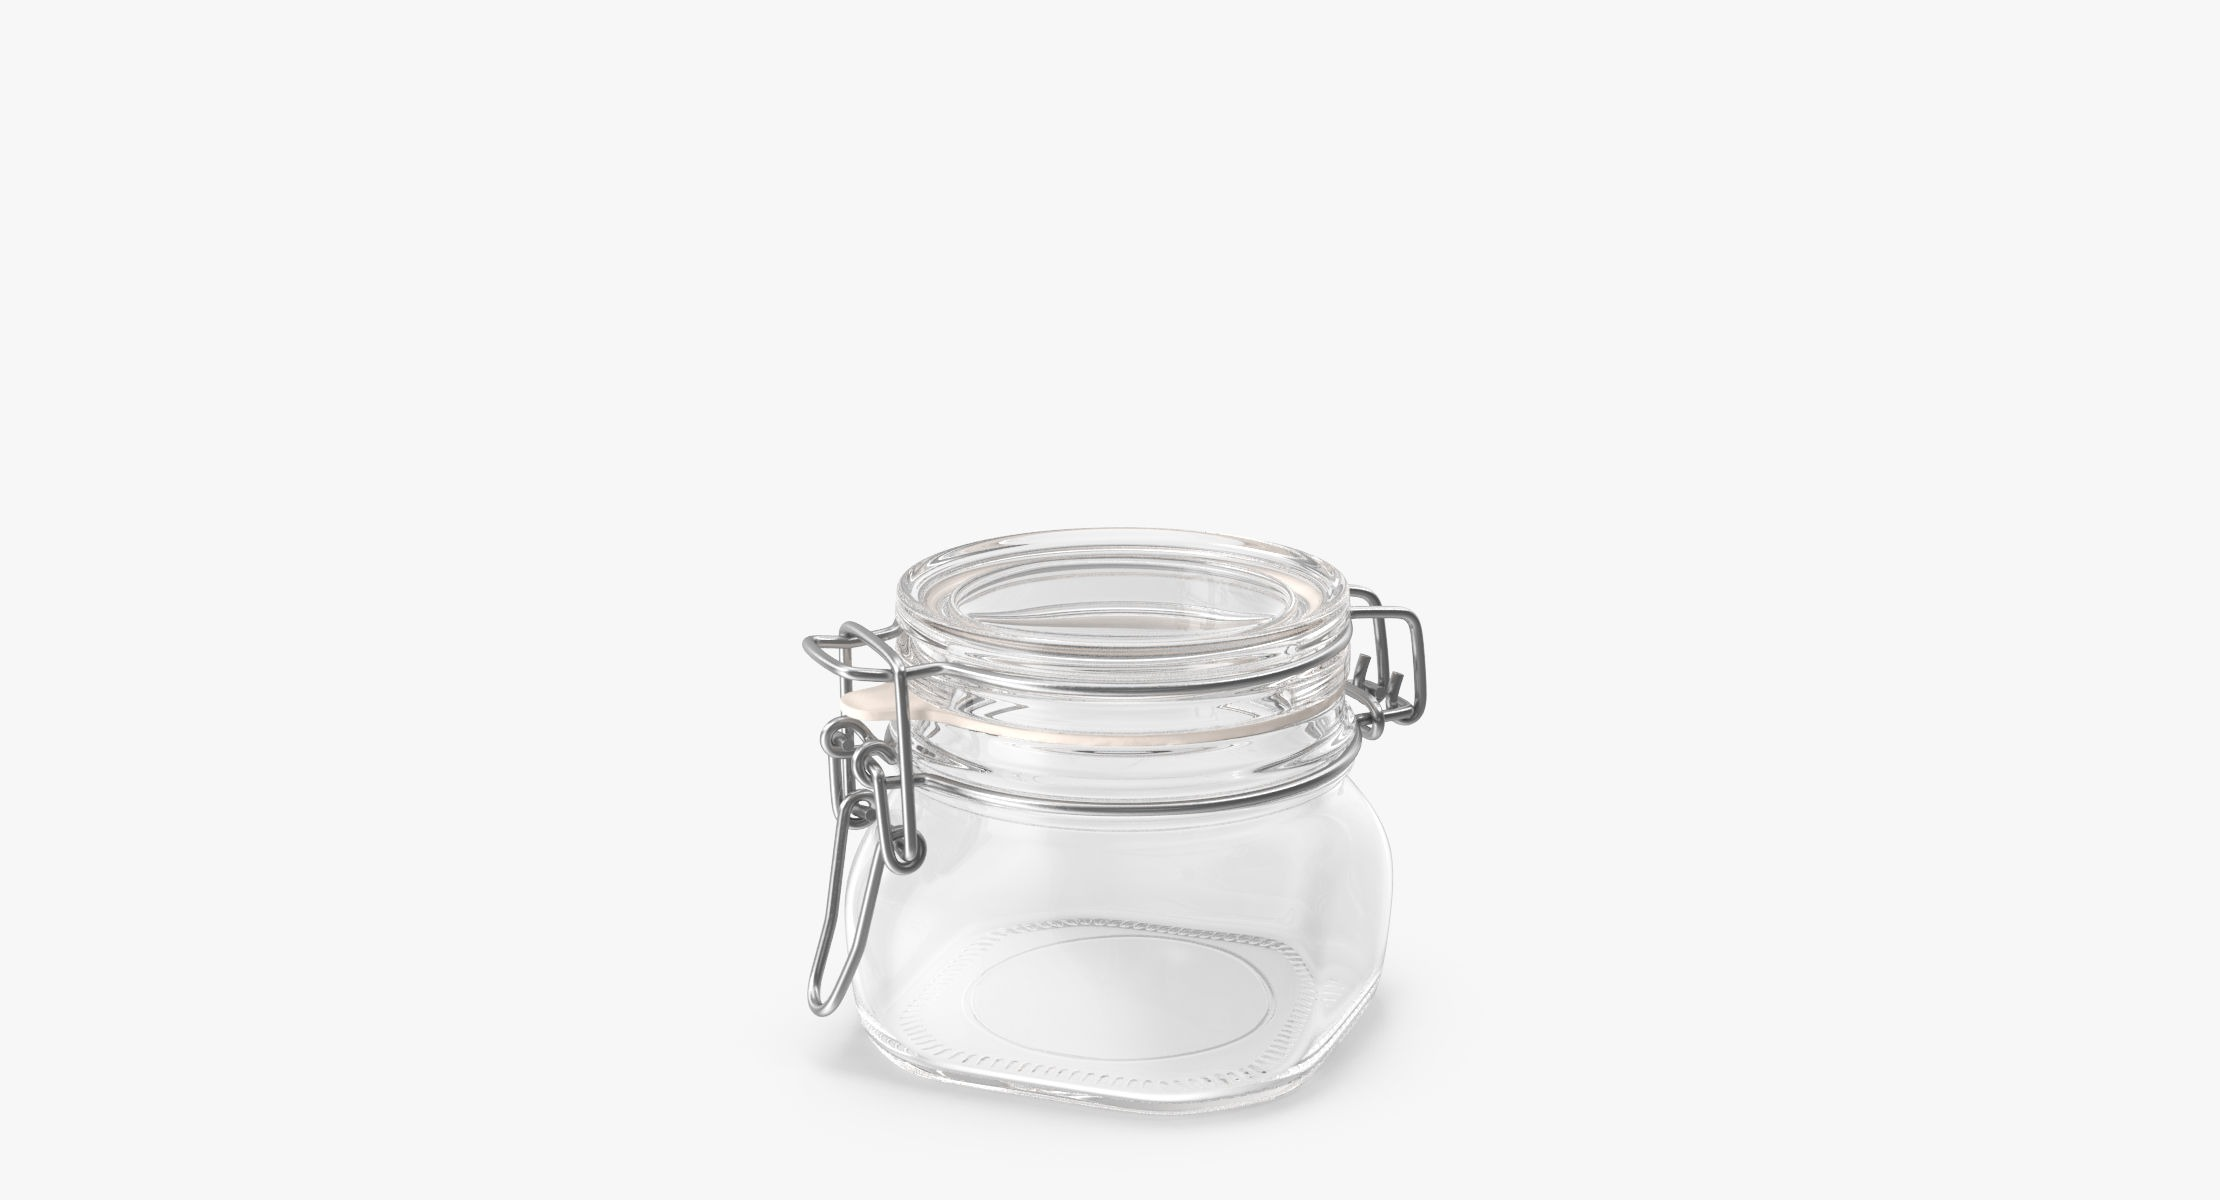 Hinged Glass Kitchen Jars 03 - reel 2